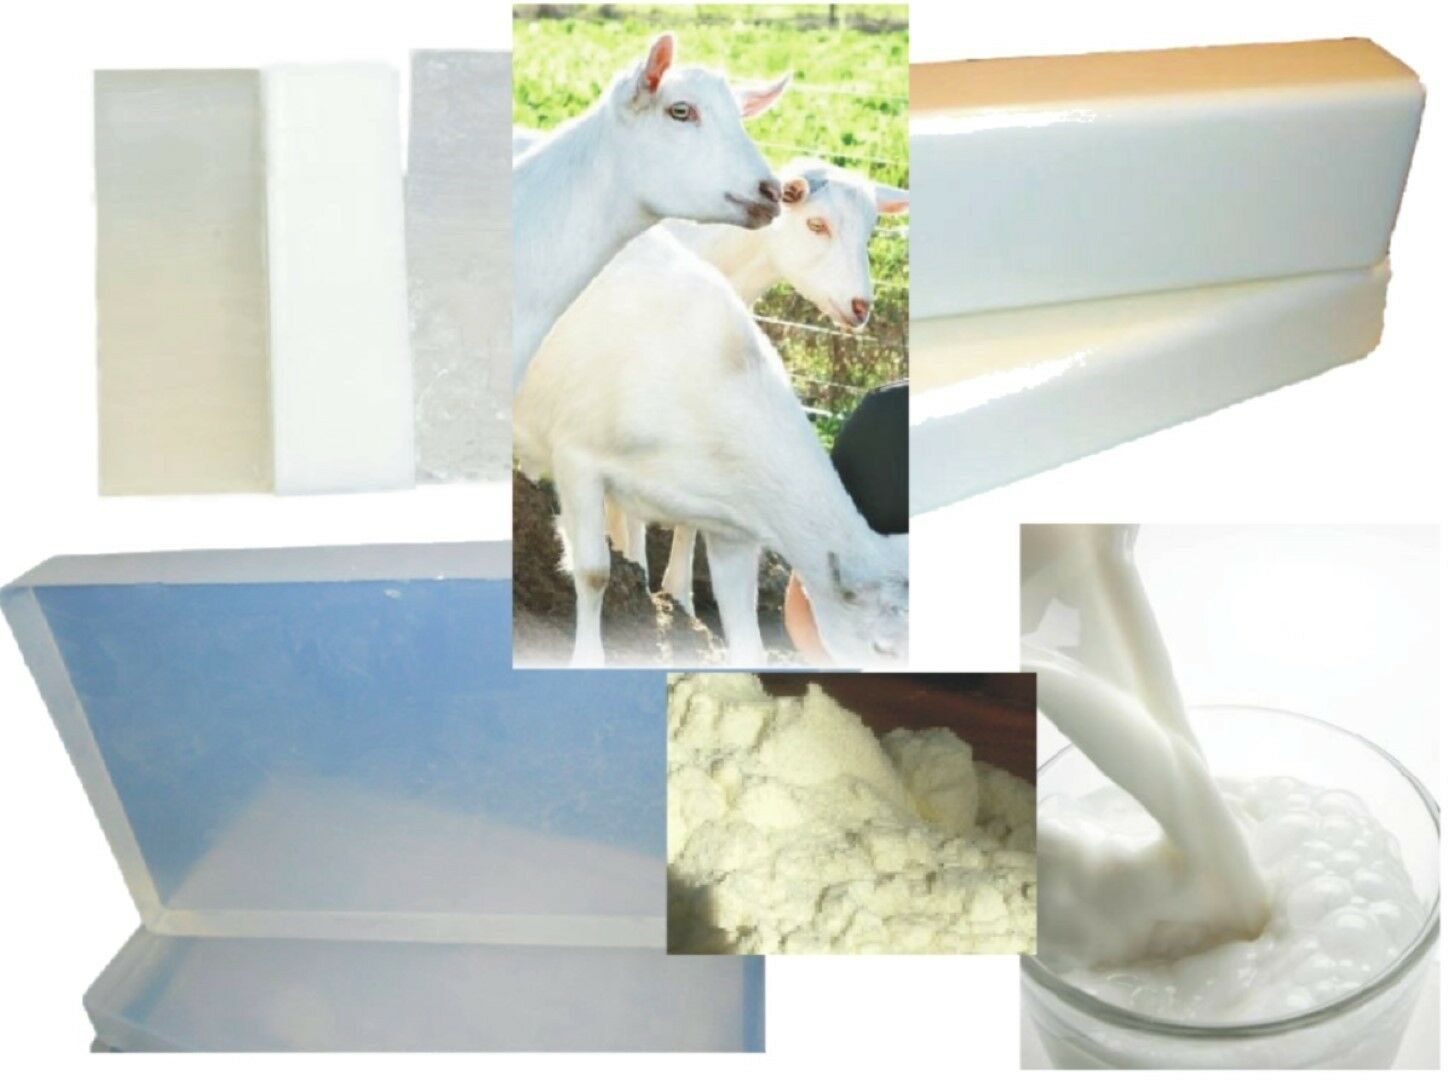 3 kg GOATS MILK MELT and POUR SOAP BASE MP: FREE Shipping: Low Sweat, Easy, Firm